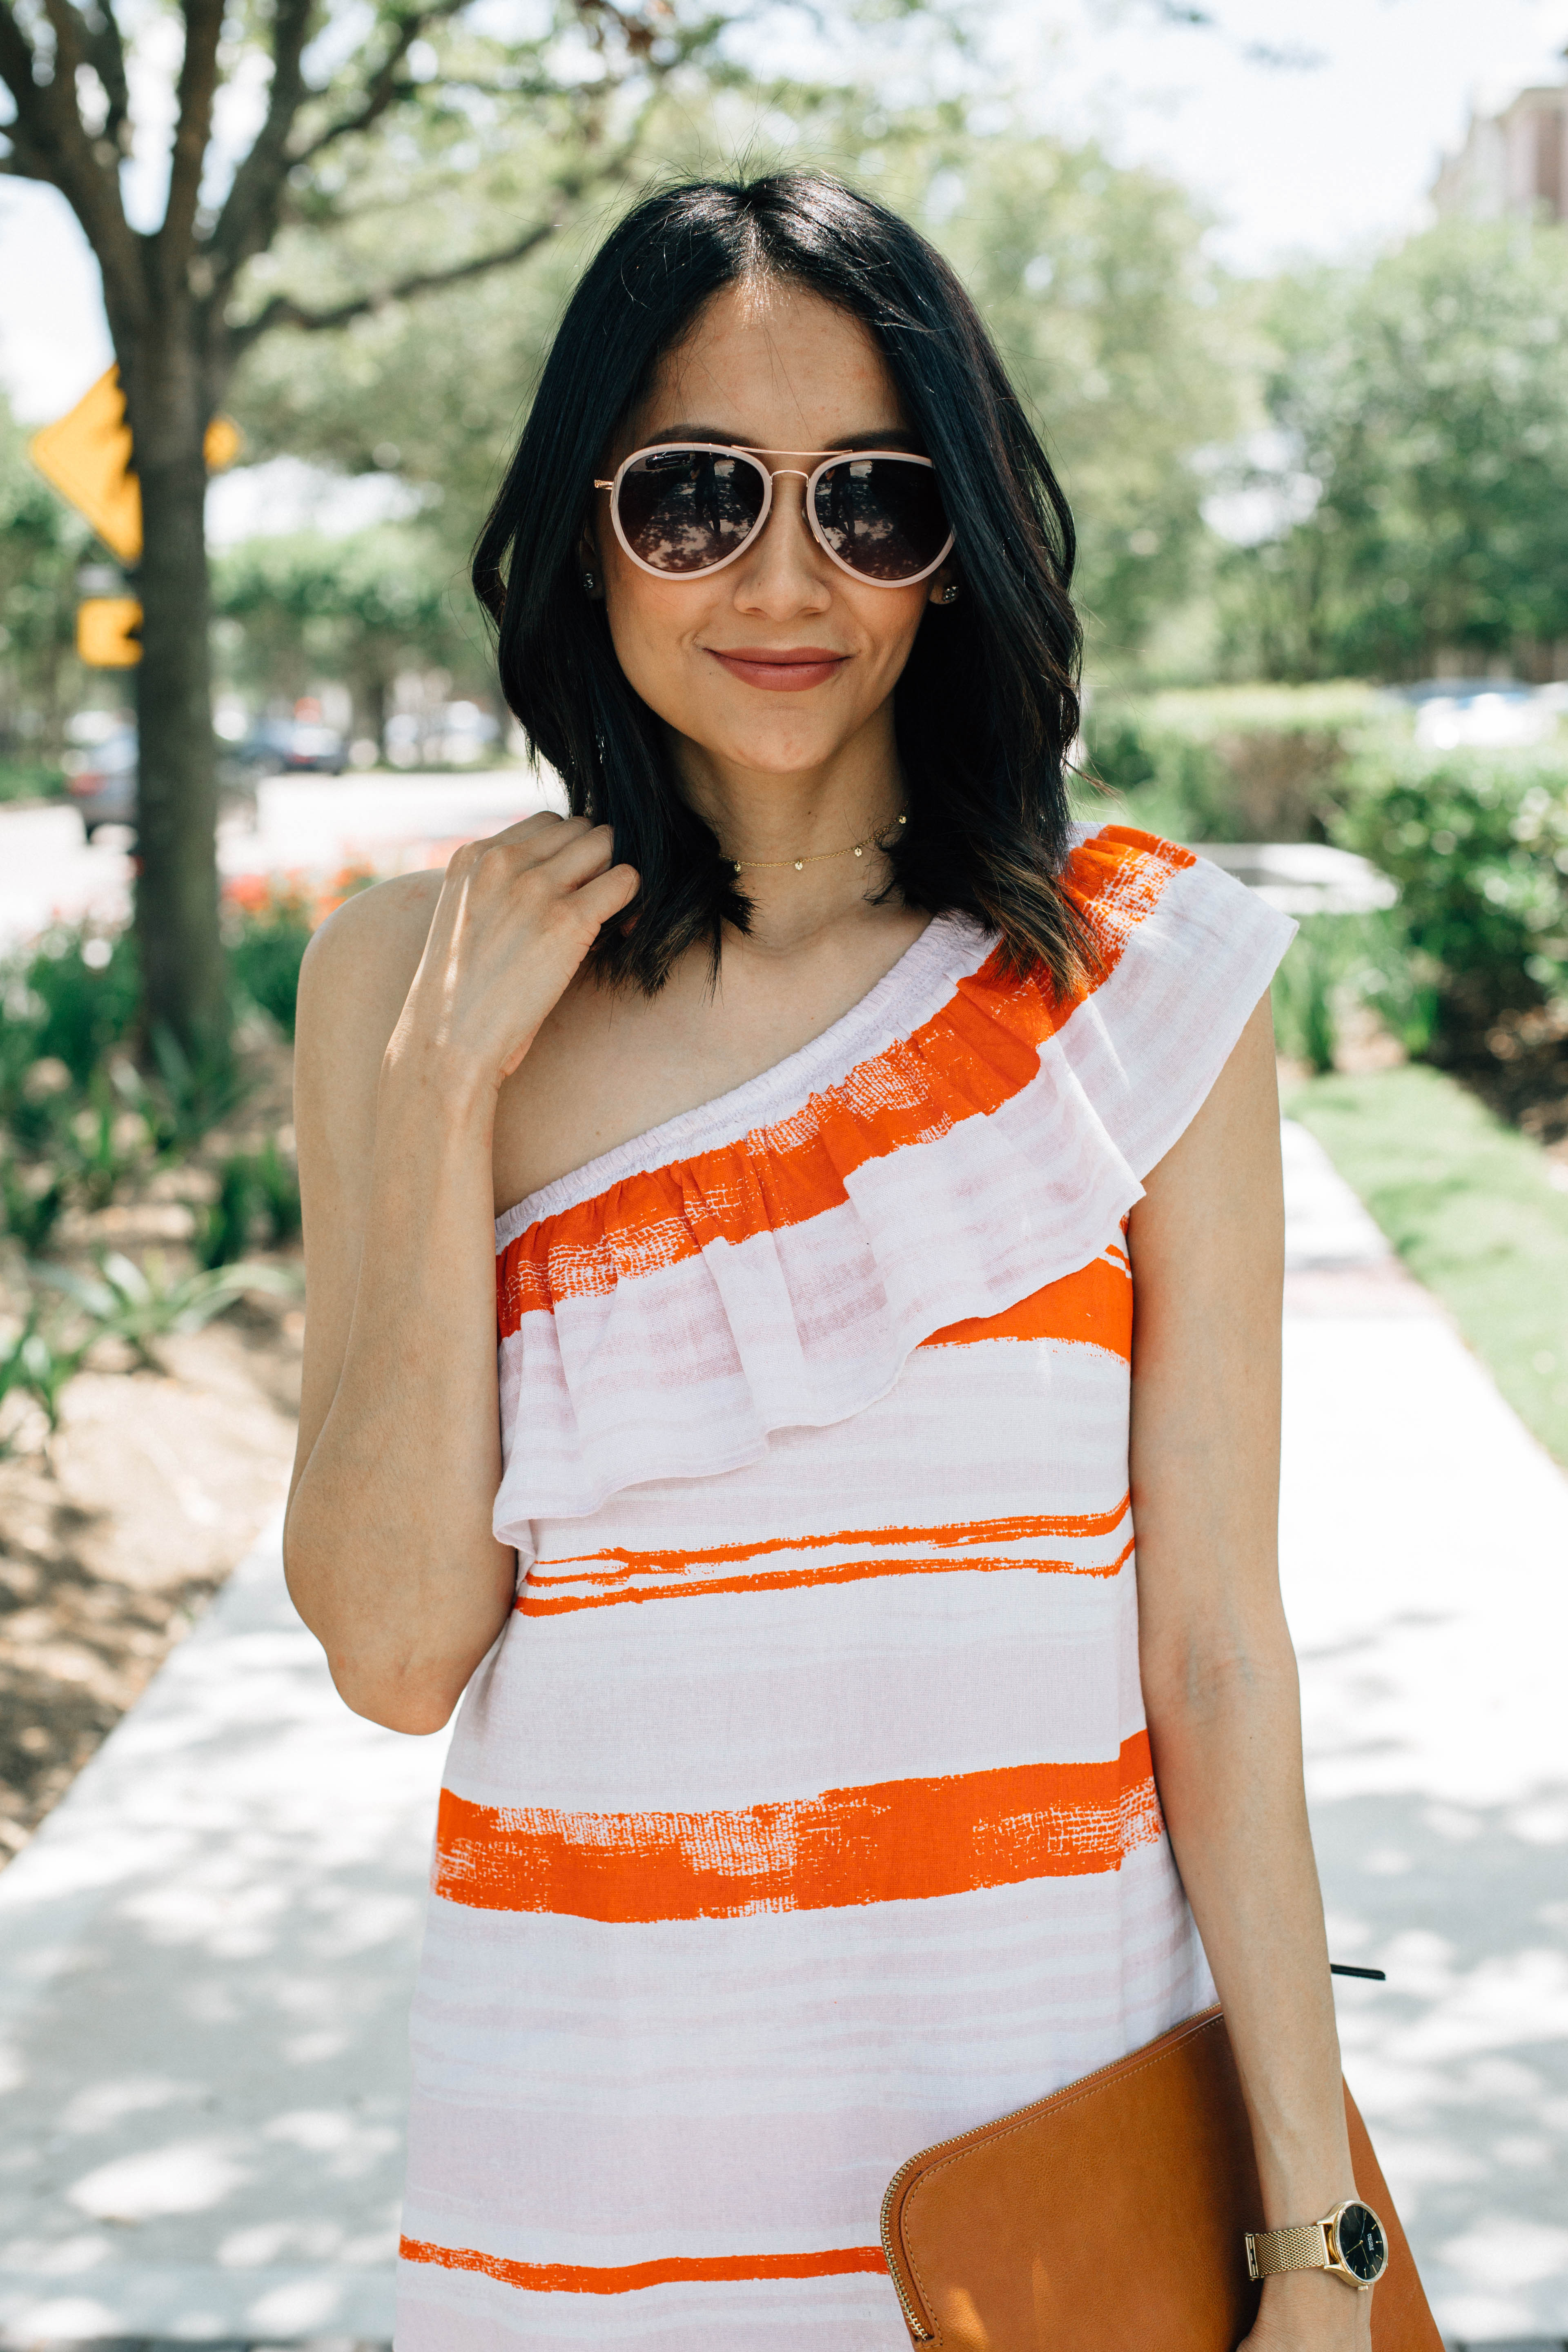 One Shoulder Dress | Pink Aviator Sunglasses | Relaxed Waves